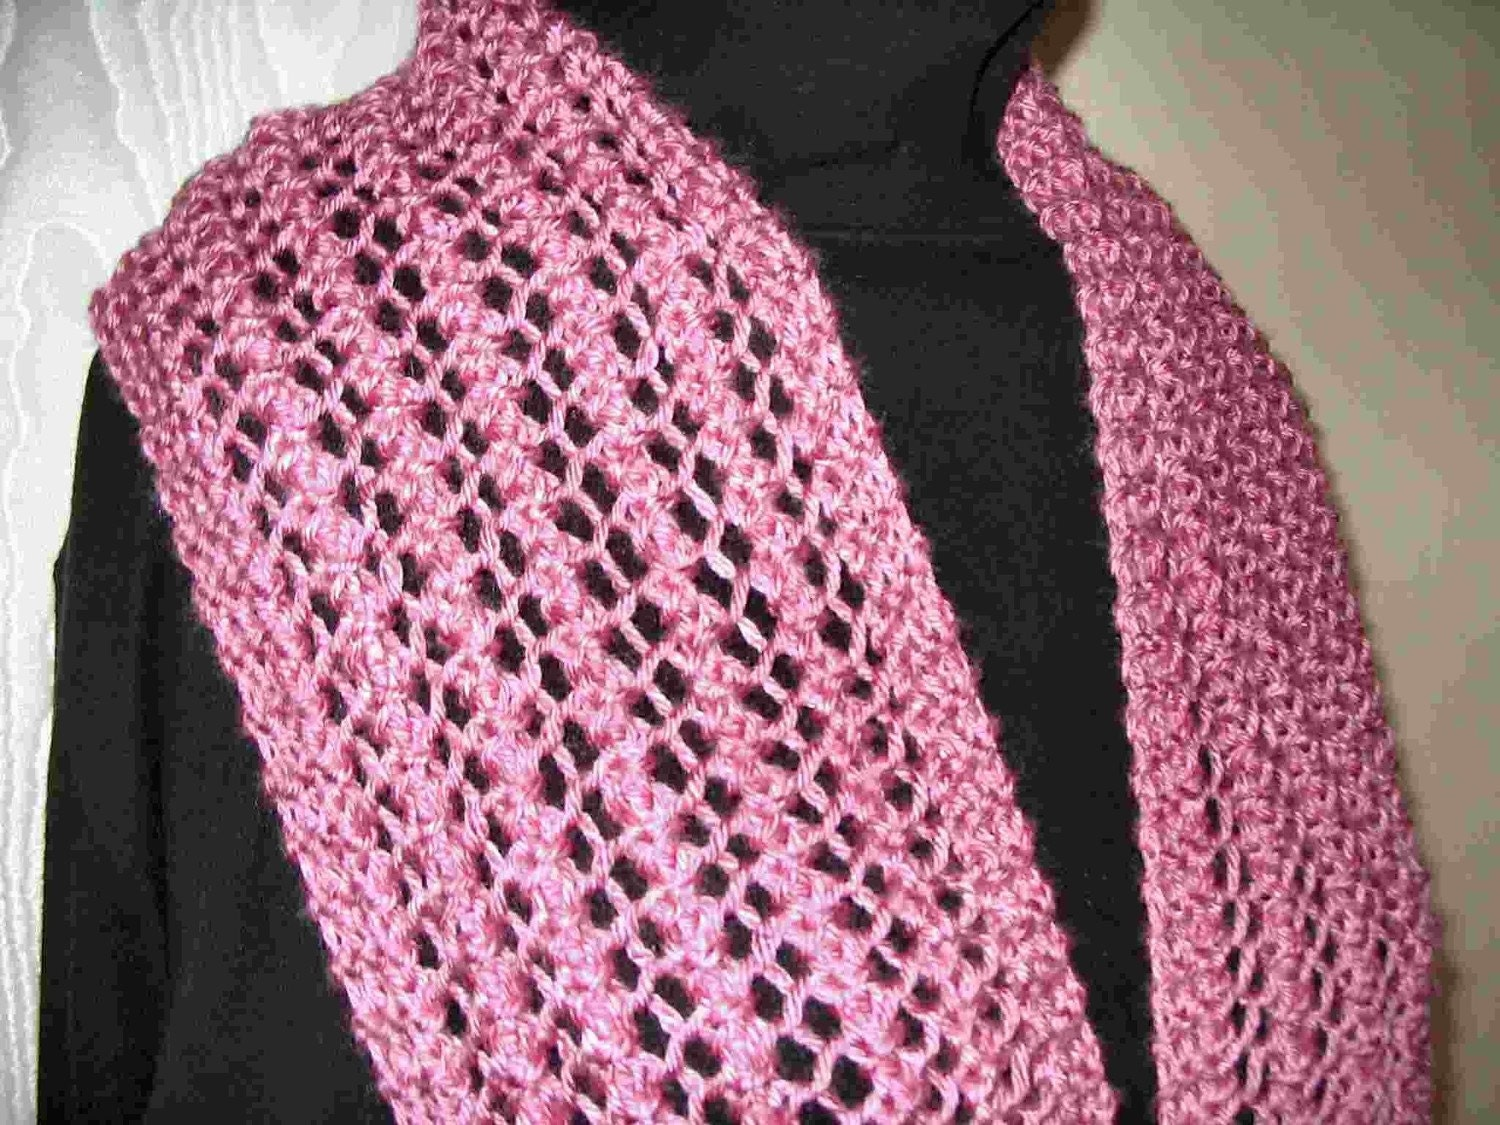 Knitting Lace Patterns Free : EASY LACE KNIT PATTERNS   Free Patterns